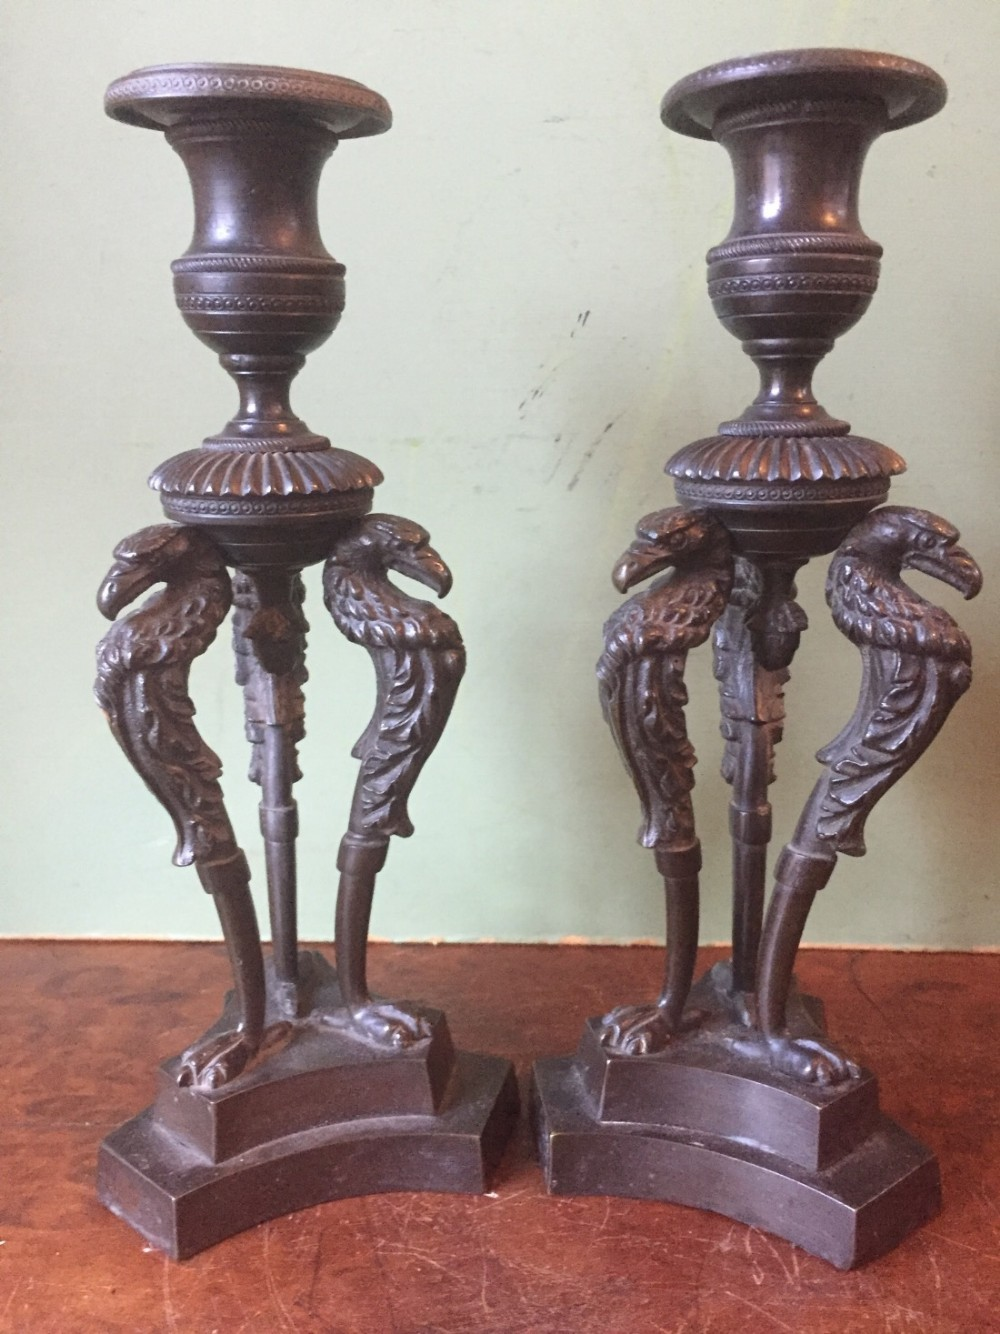 pair of early c19th george iv period bronze candlesticks on triform stylised eagle or griffin supports